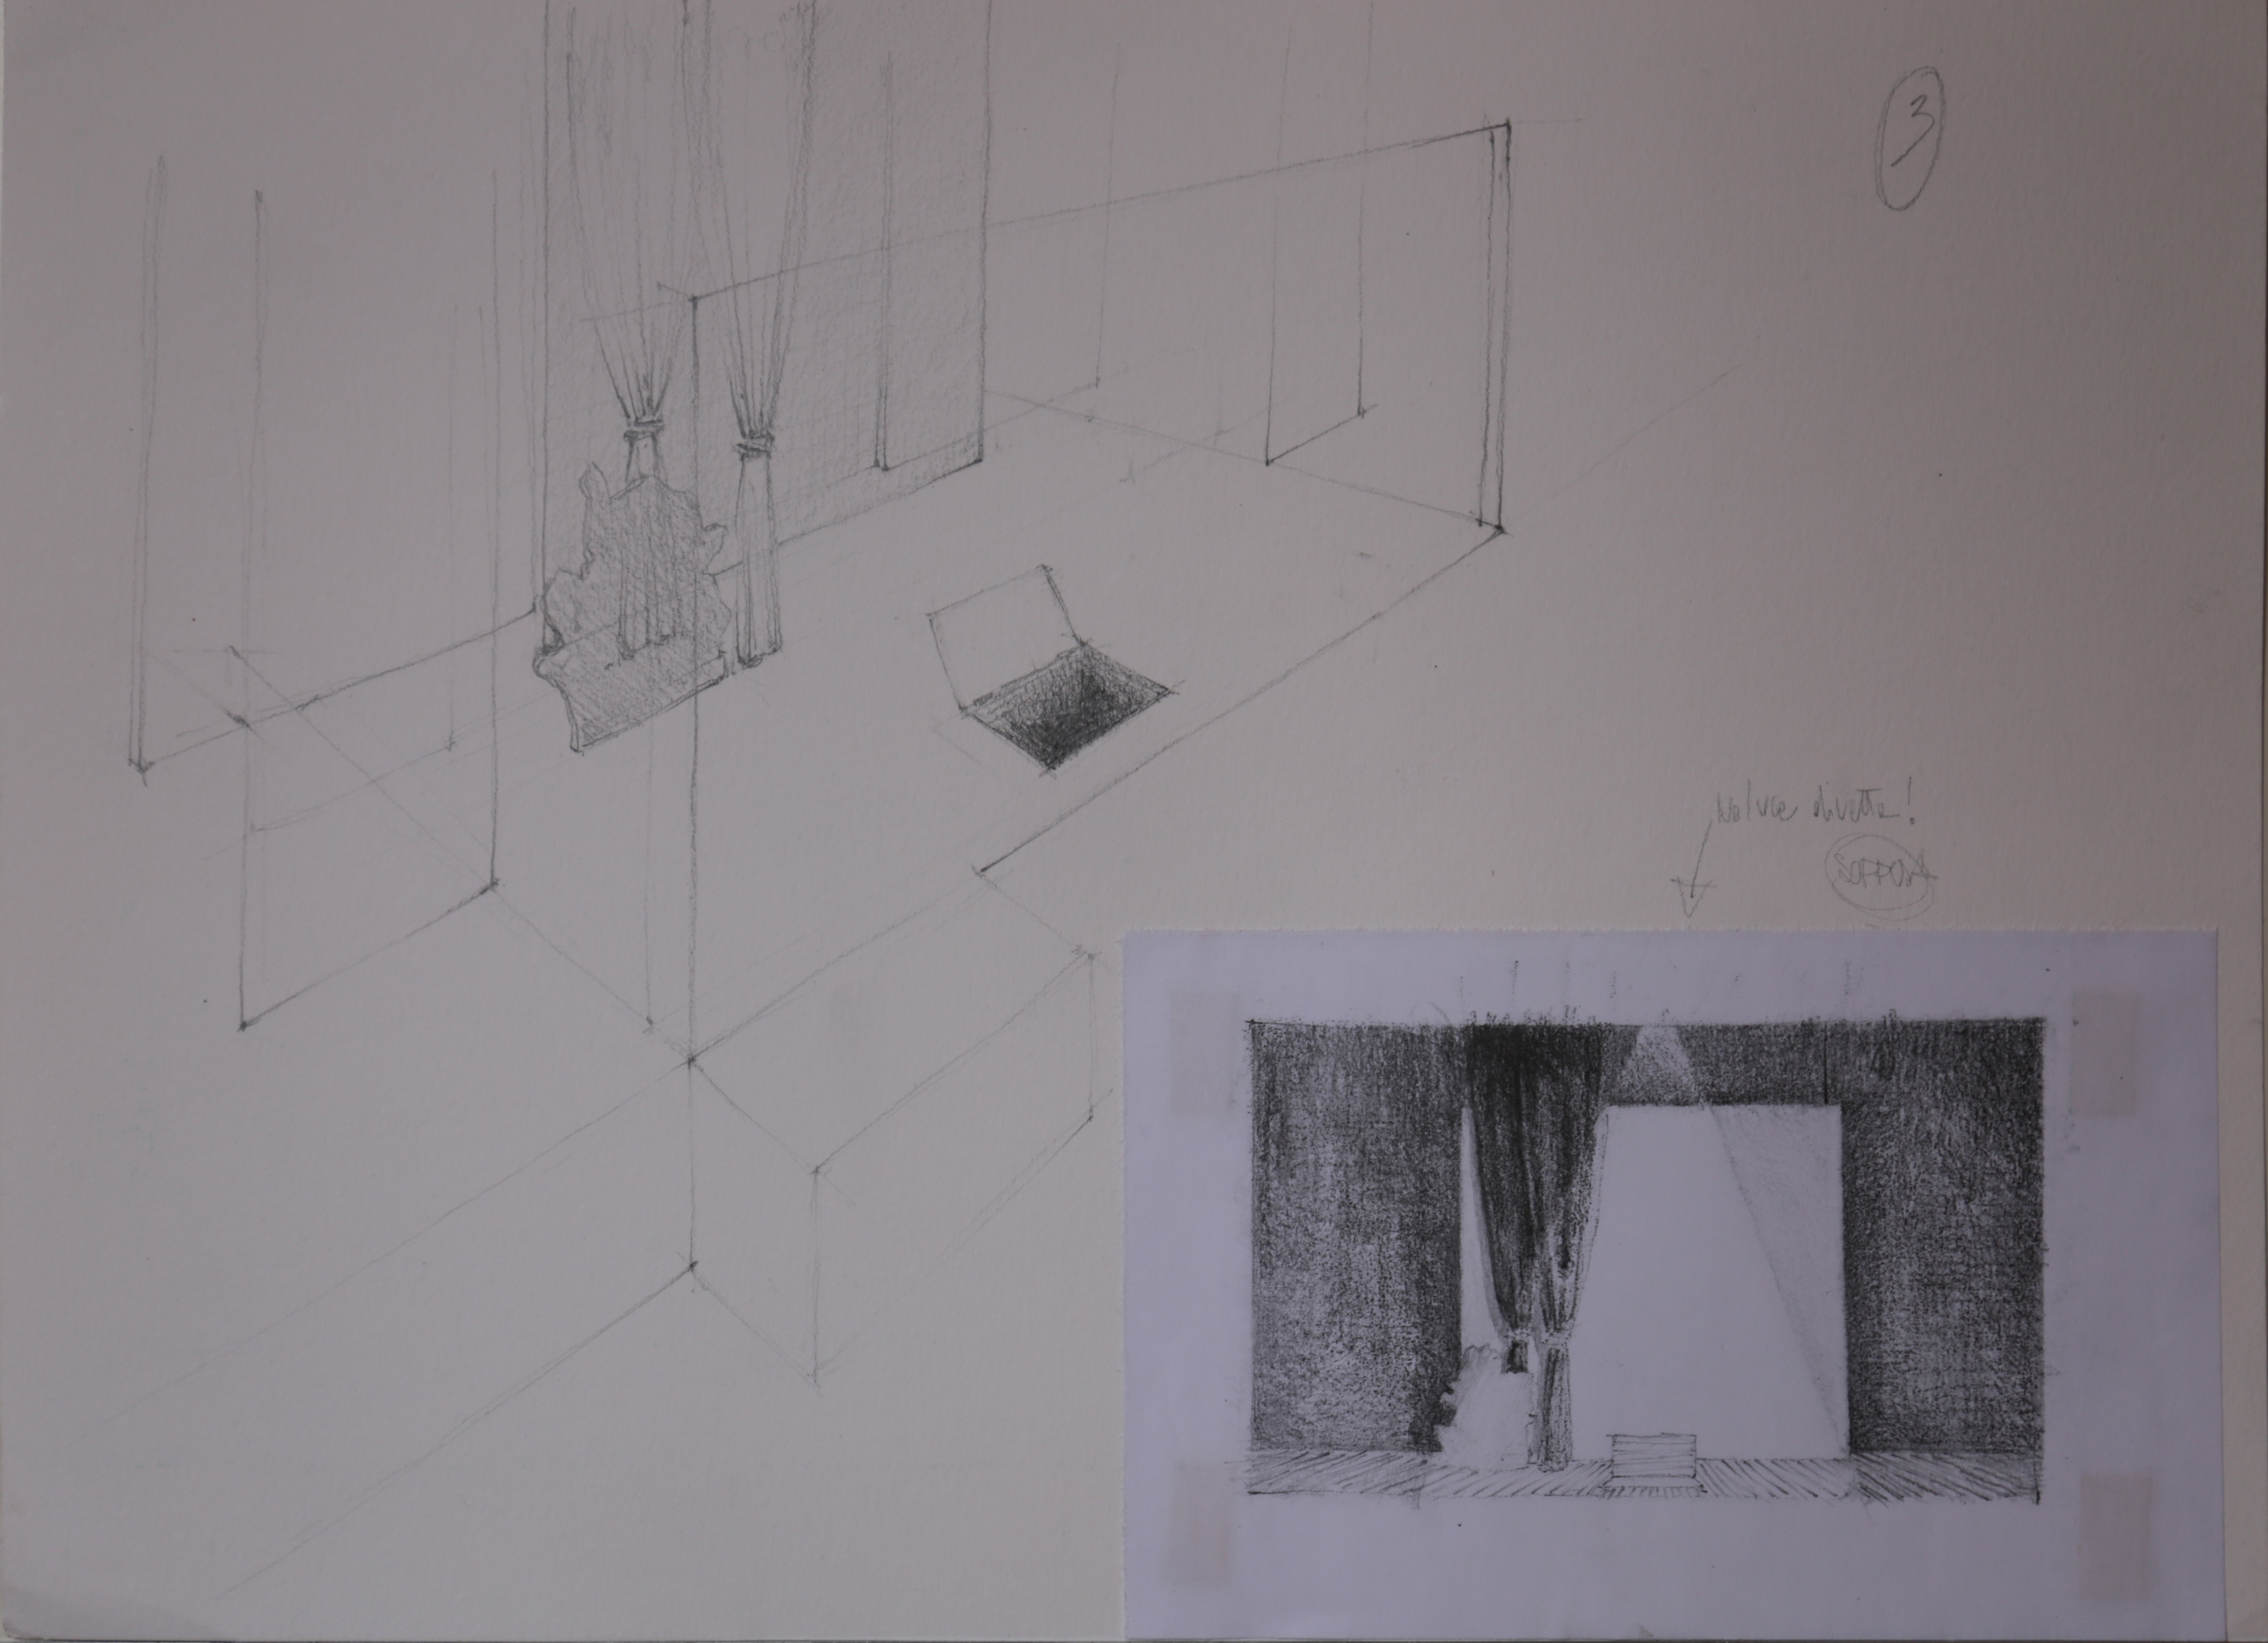 Sketch Set Design of the ACT II